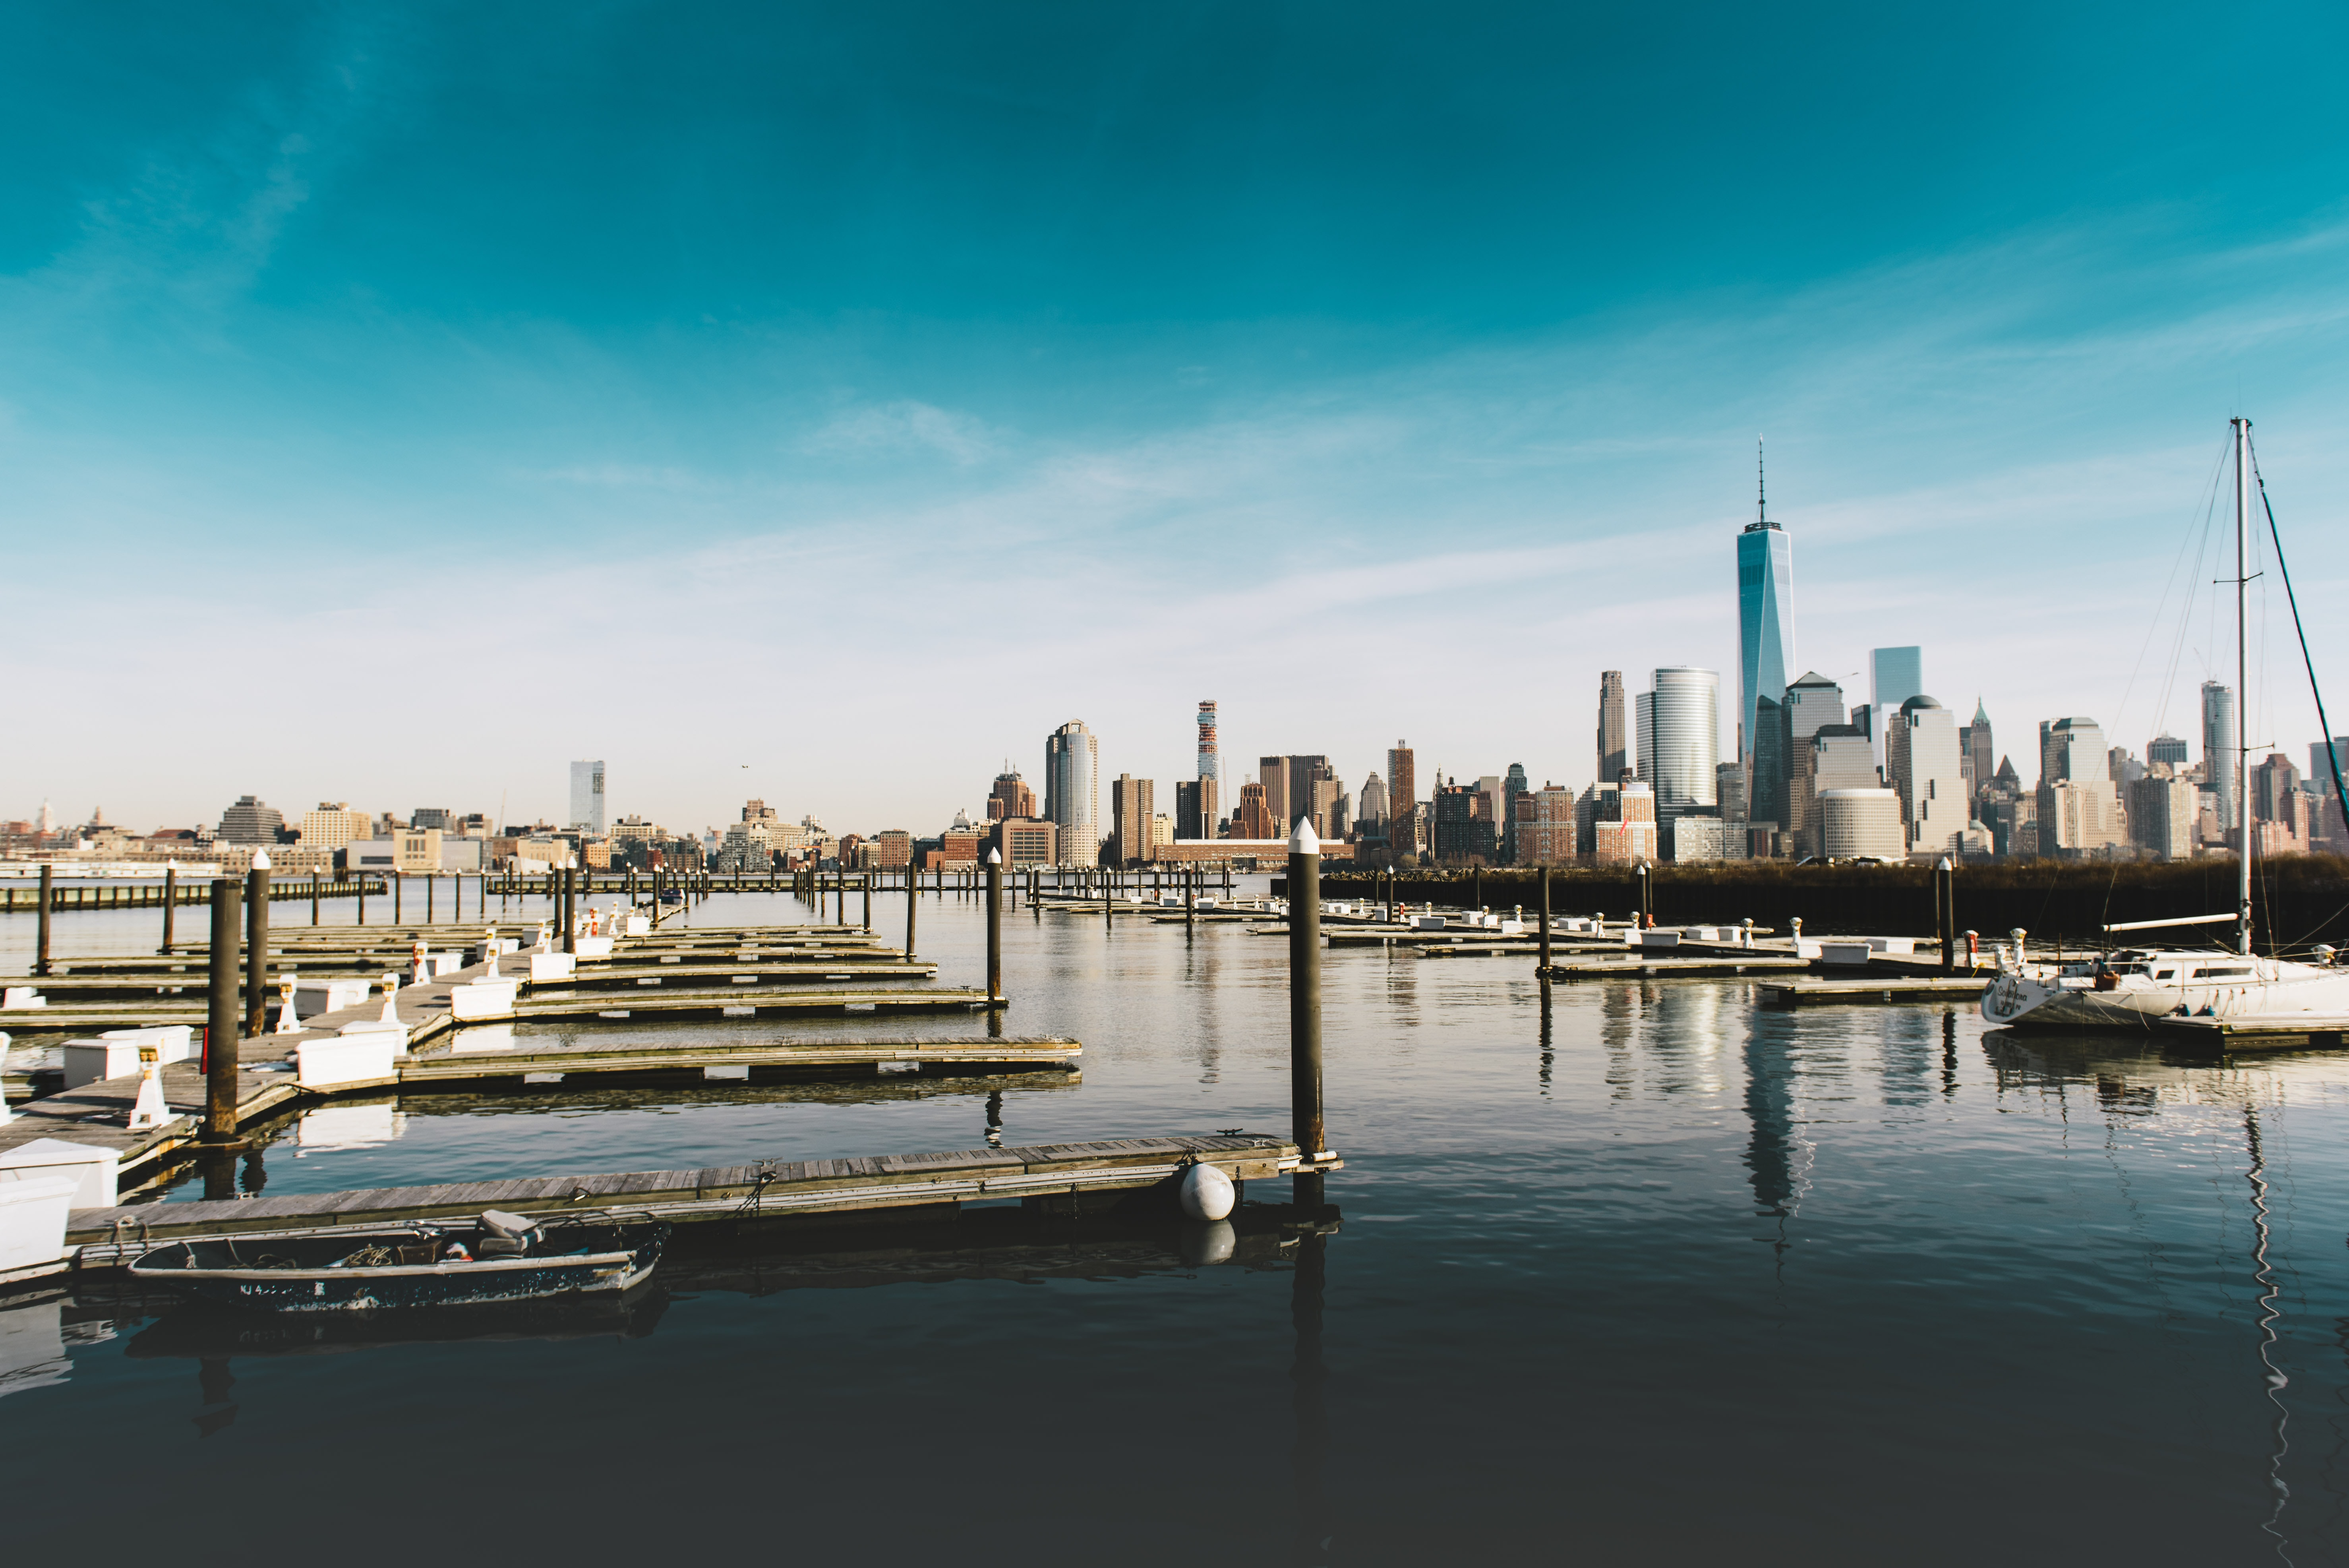 Free Unsplash photo from Alice Donovan Rouse